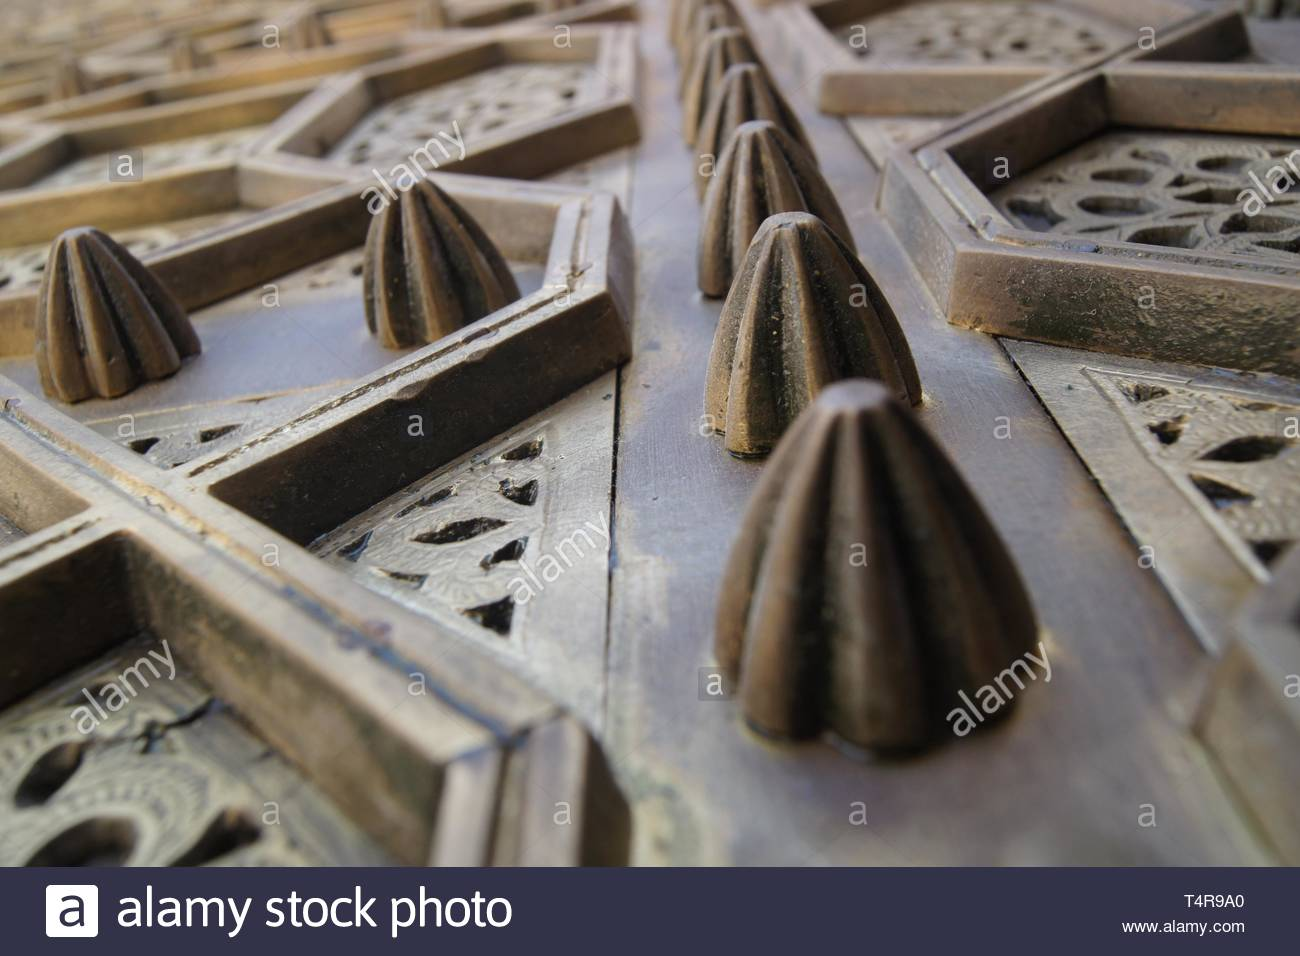 knobs on openwork panels - Stock Image